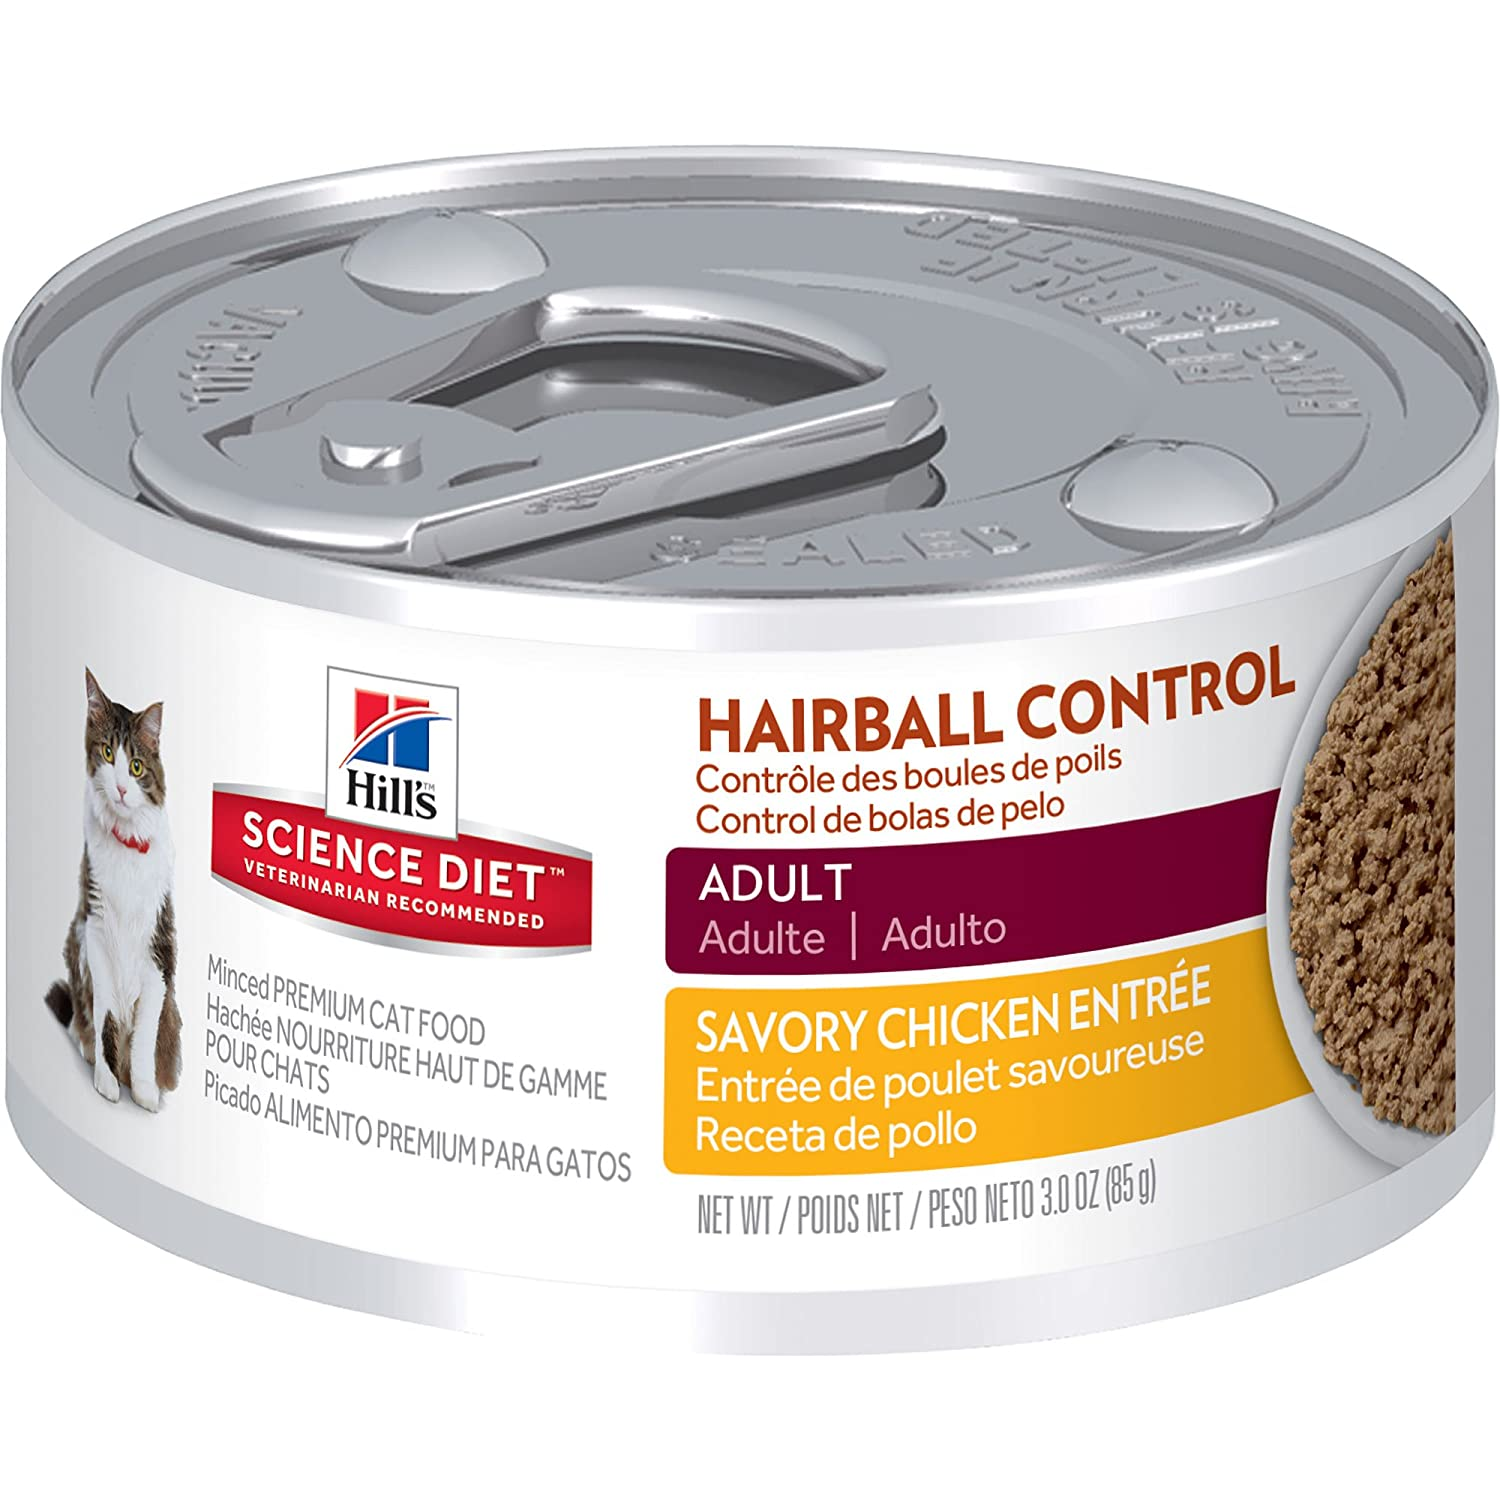 HillS Science Diet Adult Hairball Control Entree Minced Cat Food, 24-Pack